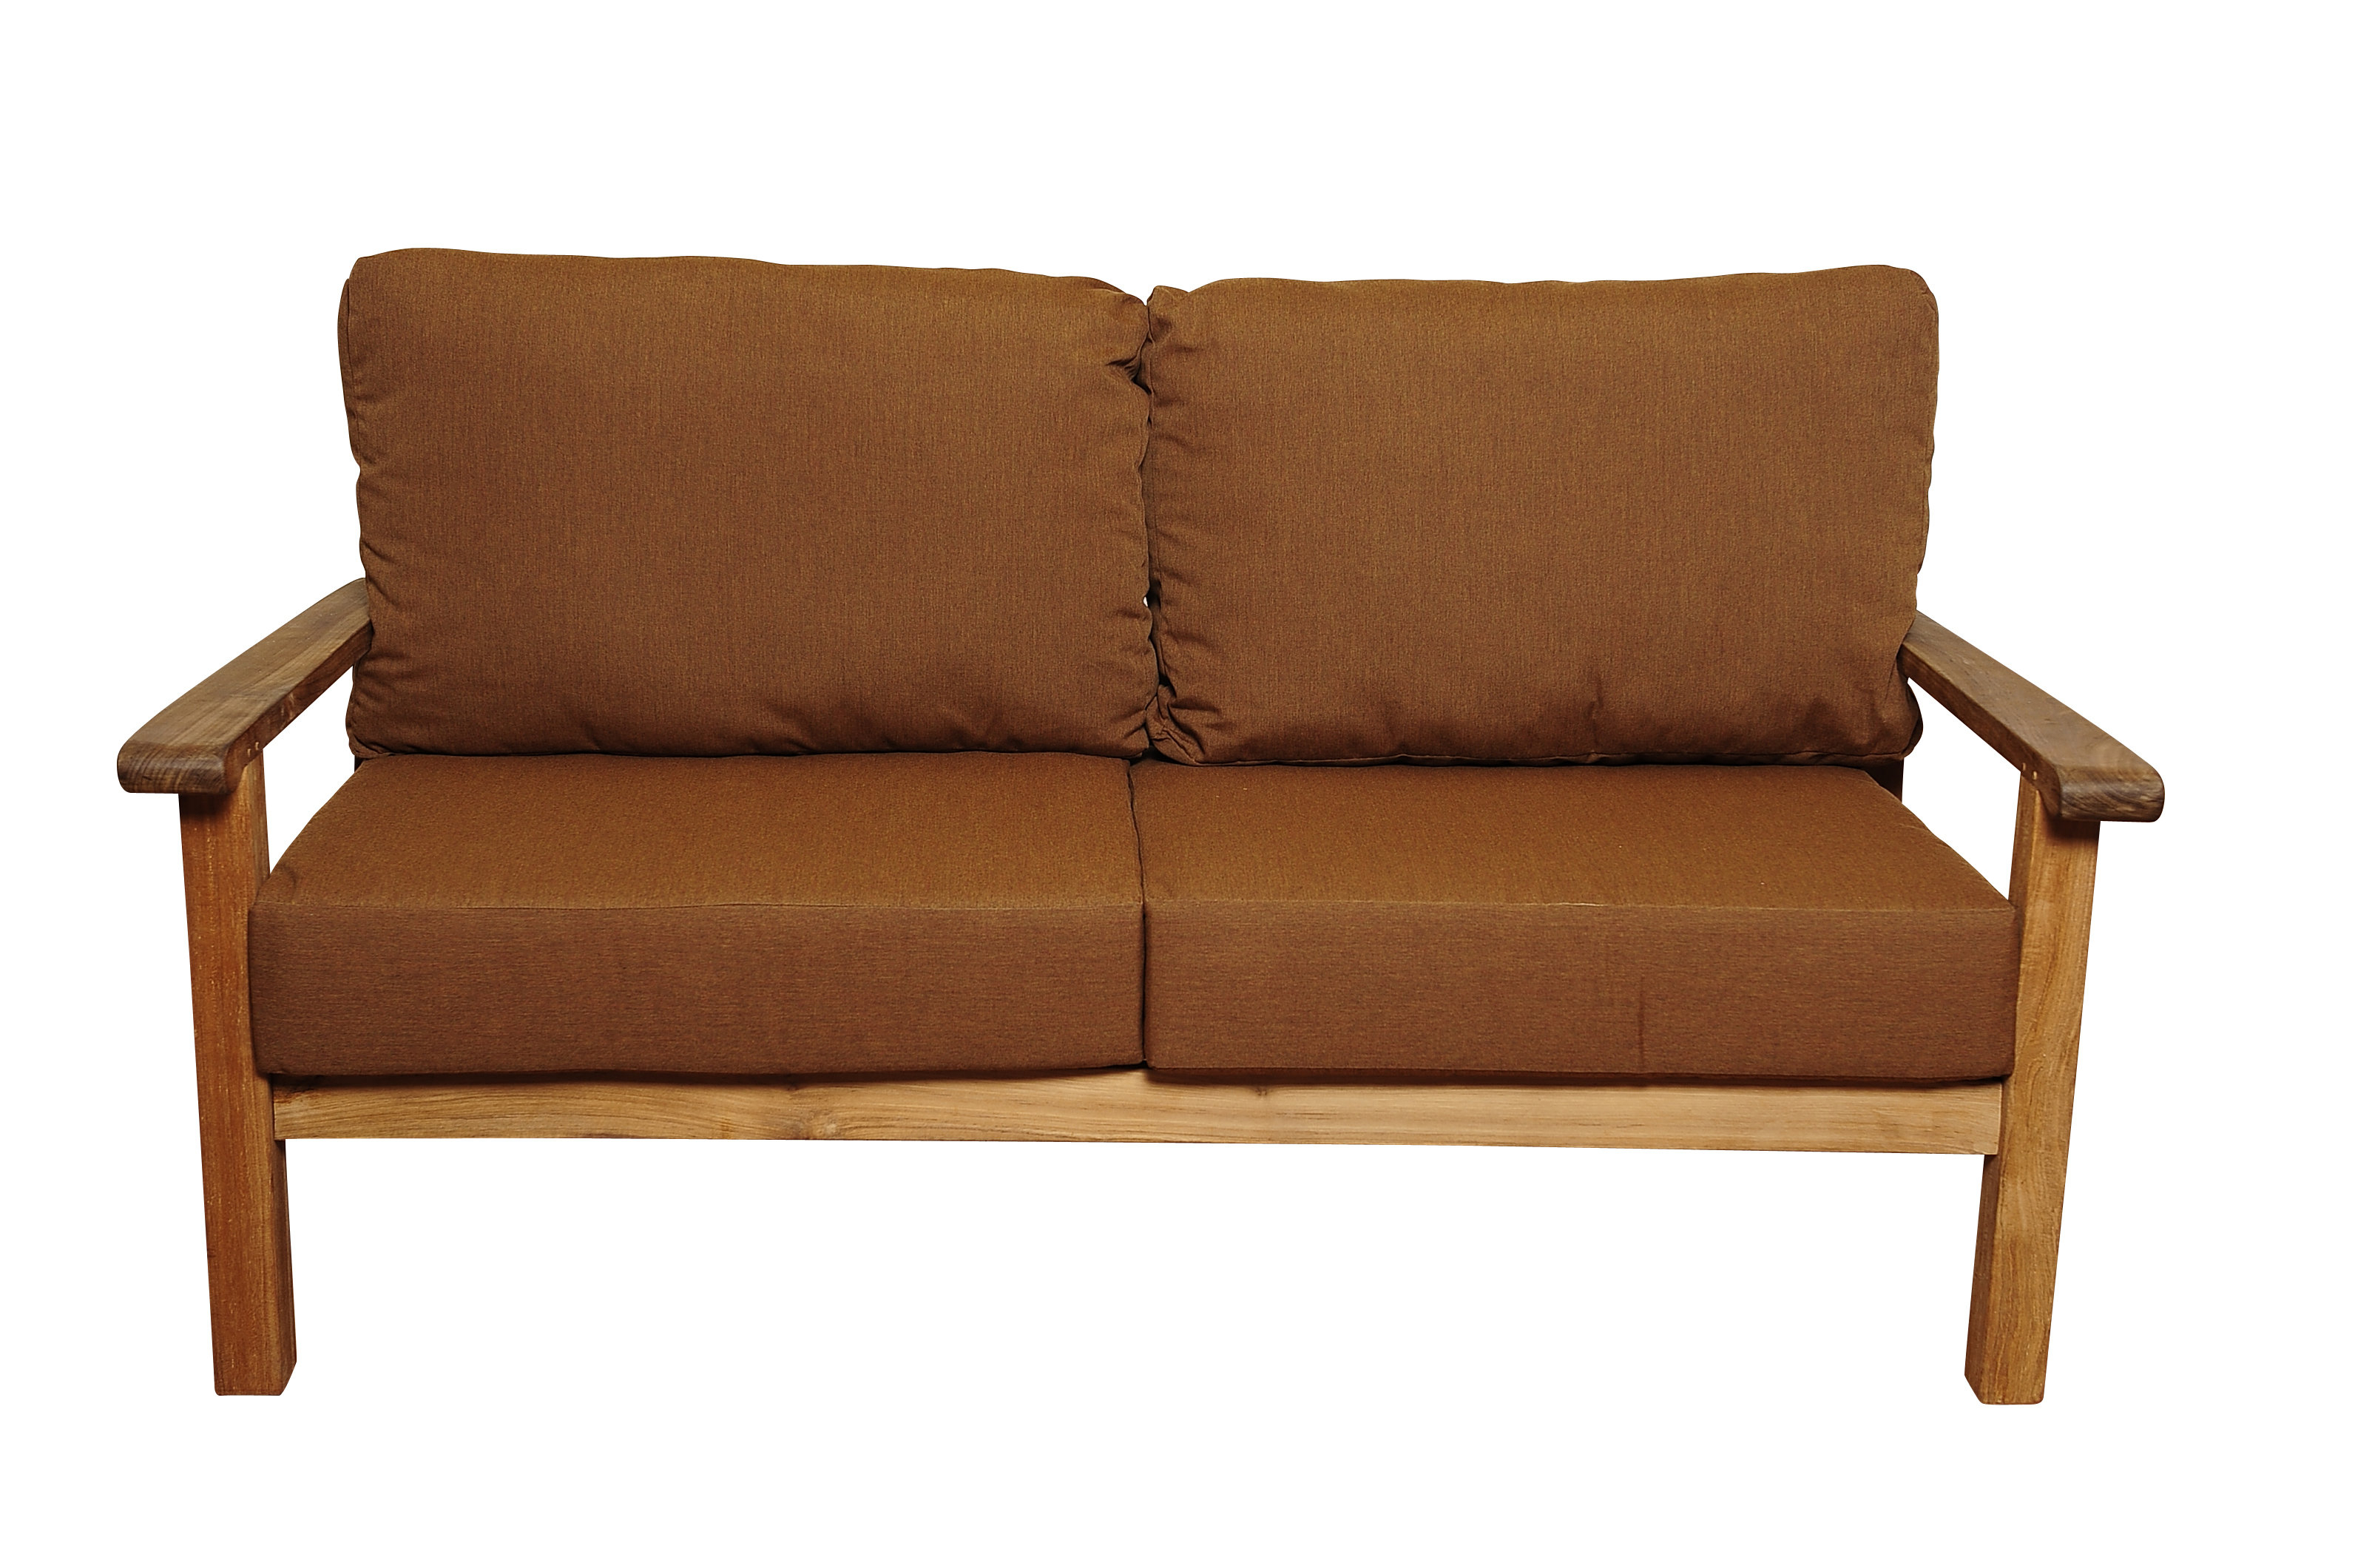 Elsmere Teak Loveseat With Sunbrella Cushions Throughout Most Recent Calila Teak Loveseats With Cushion (View 13 of 20)